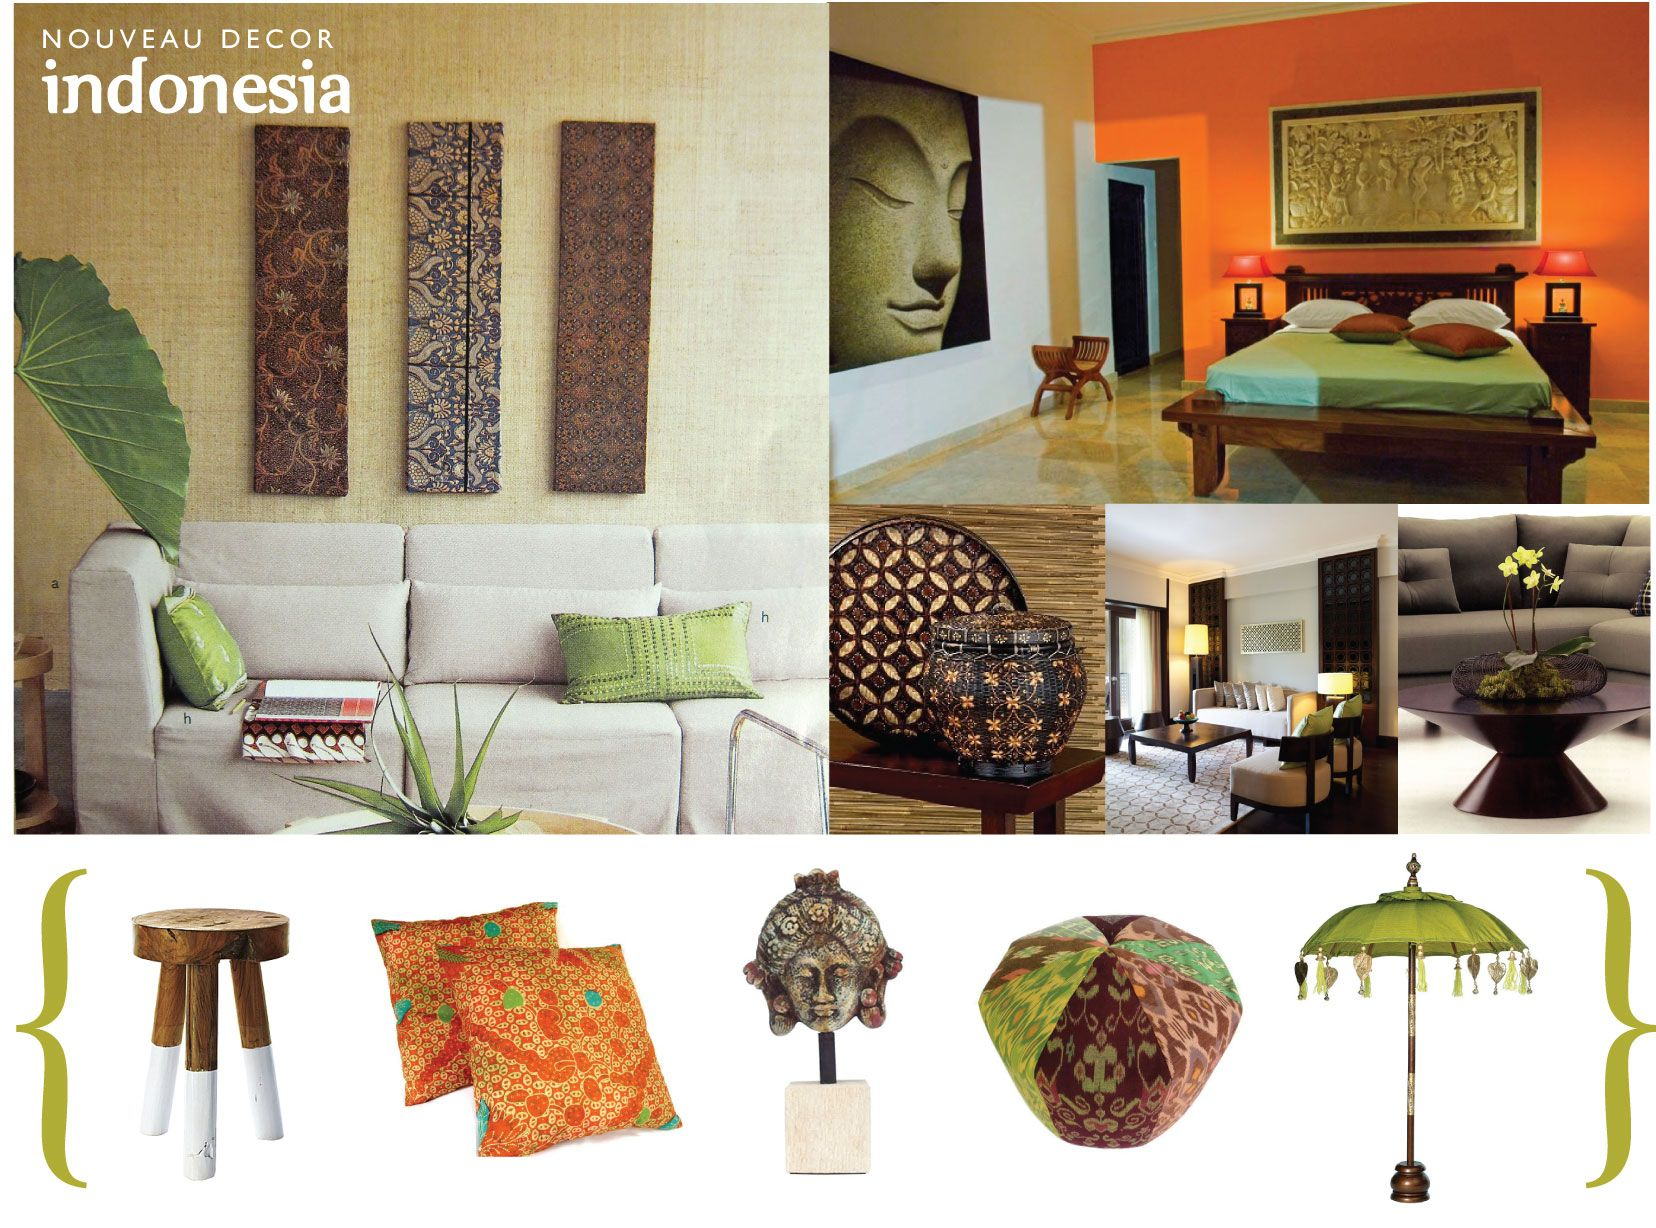 Nouveau Decor Inspired by Indonesia  Indonesian decor, Decor